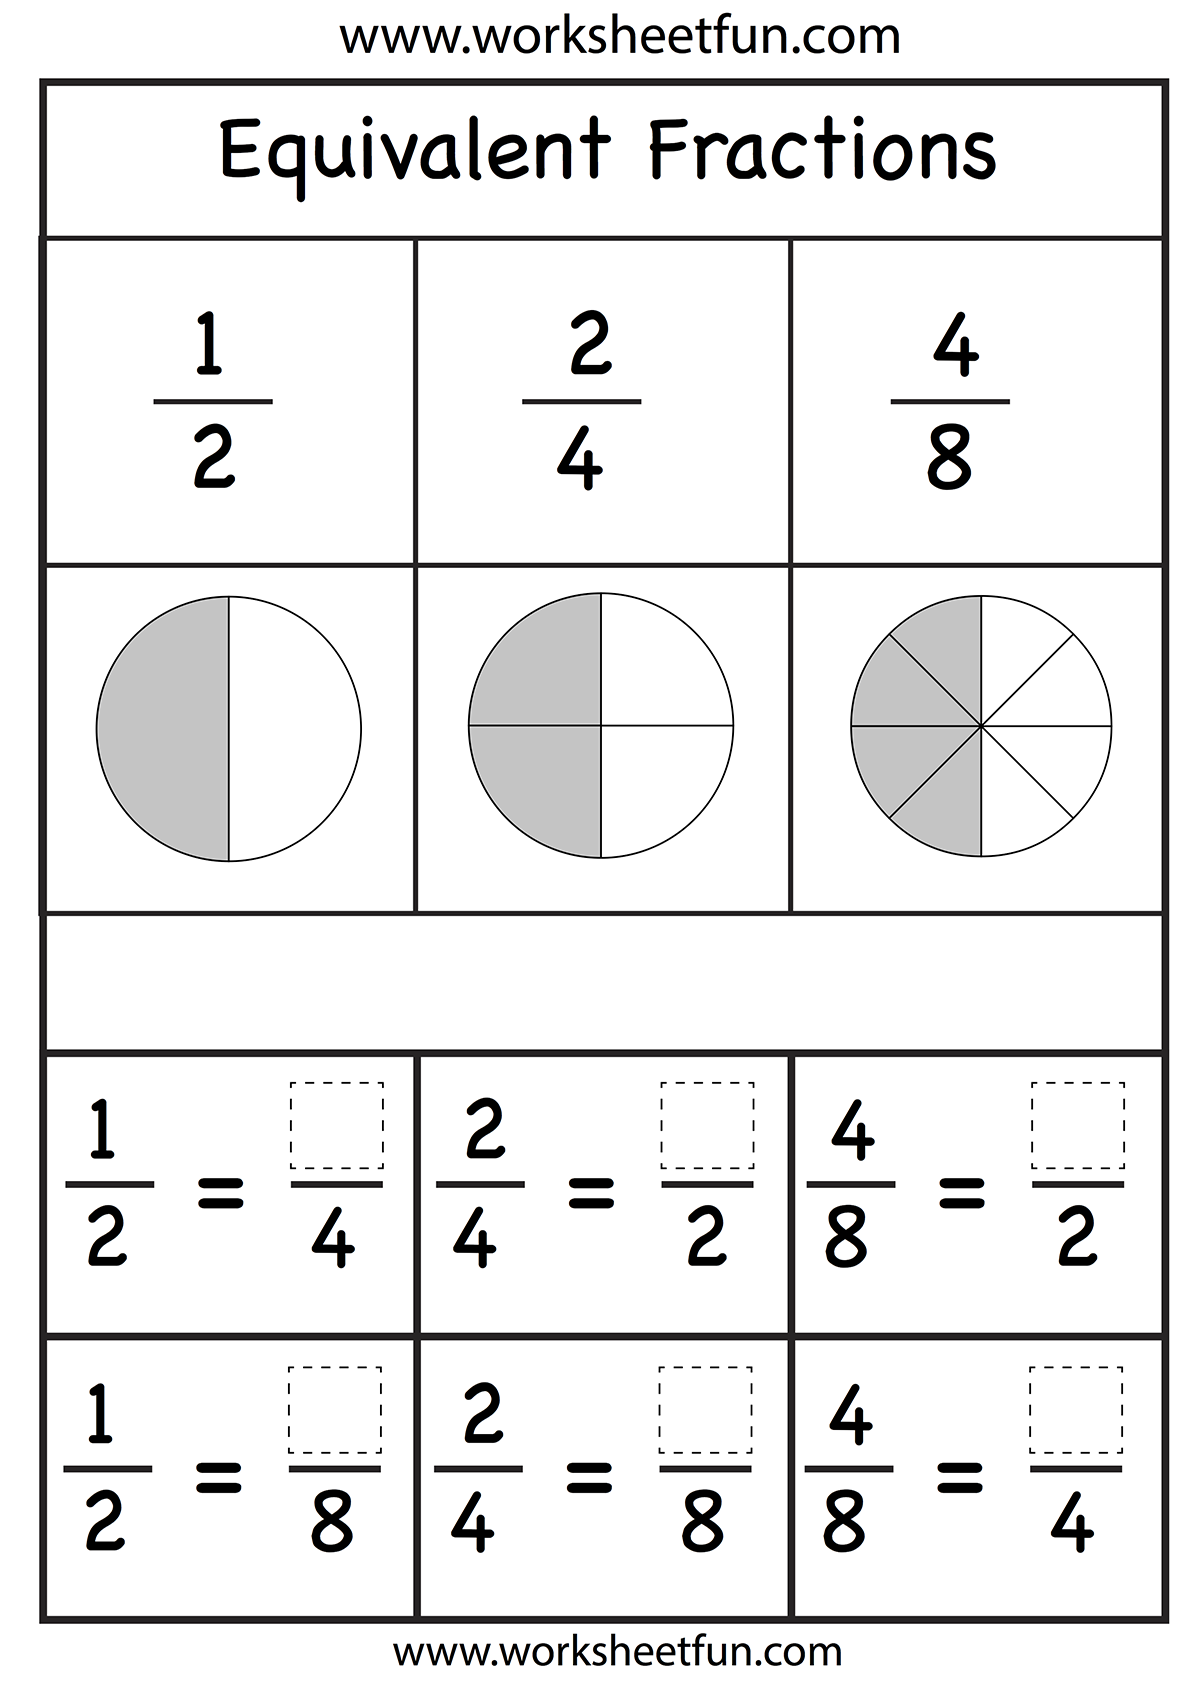 Fractions worksheet | Homeschooling: Math - Fractions | Pinterest ...